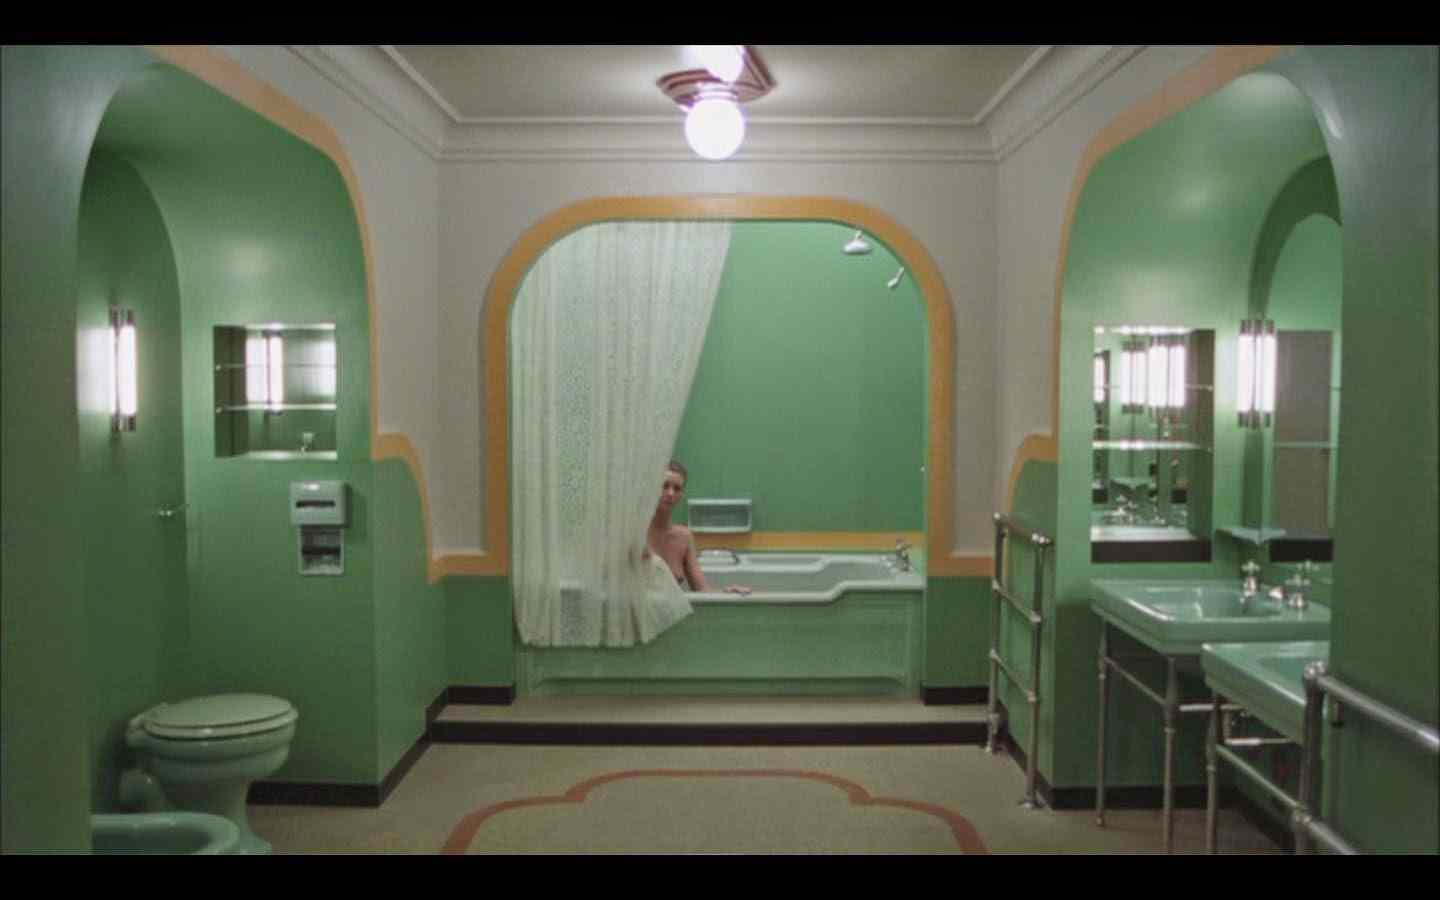 The lonely old lady who waits naked in bath tubs to haunt horny mens dreams.